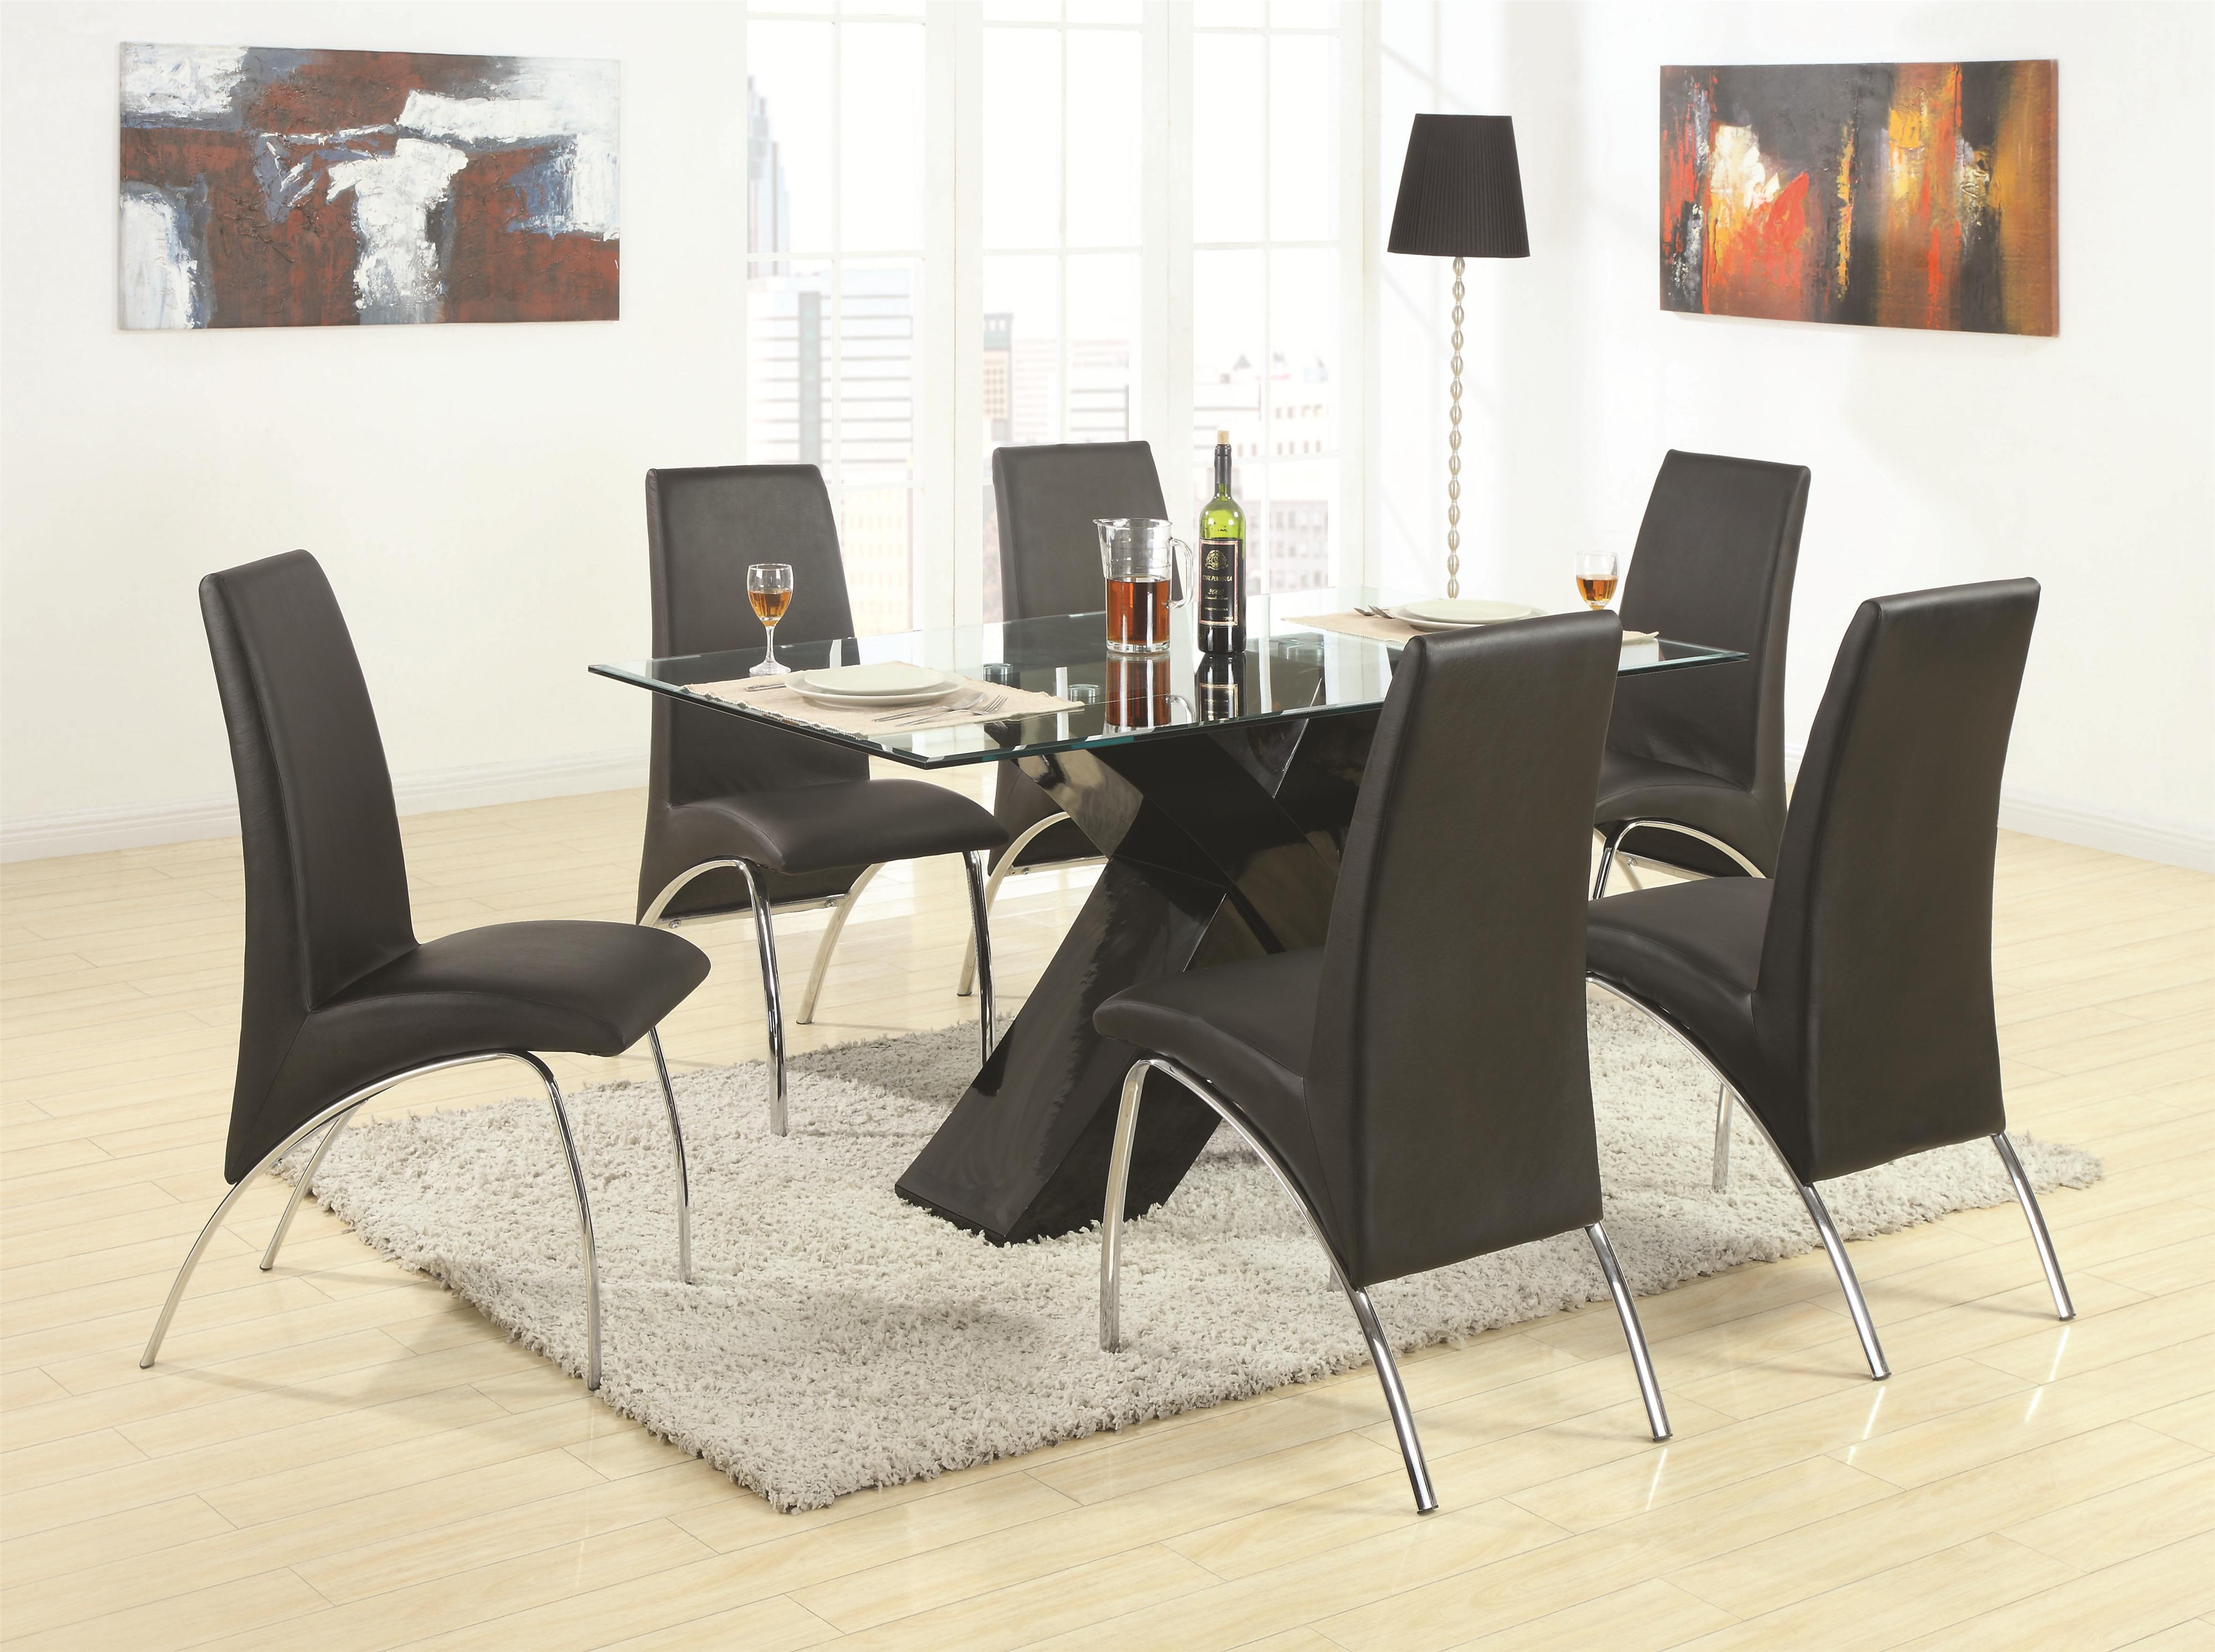 Dining Table With Gl Tyres2c